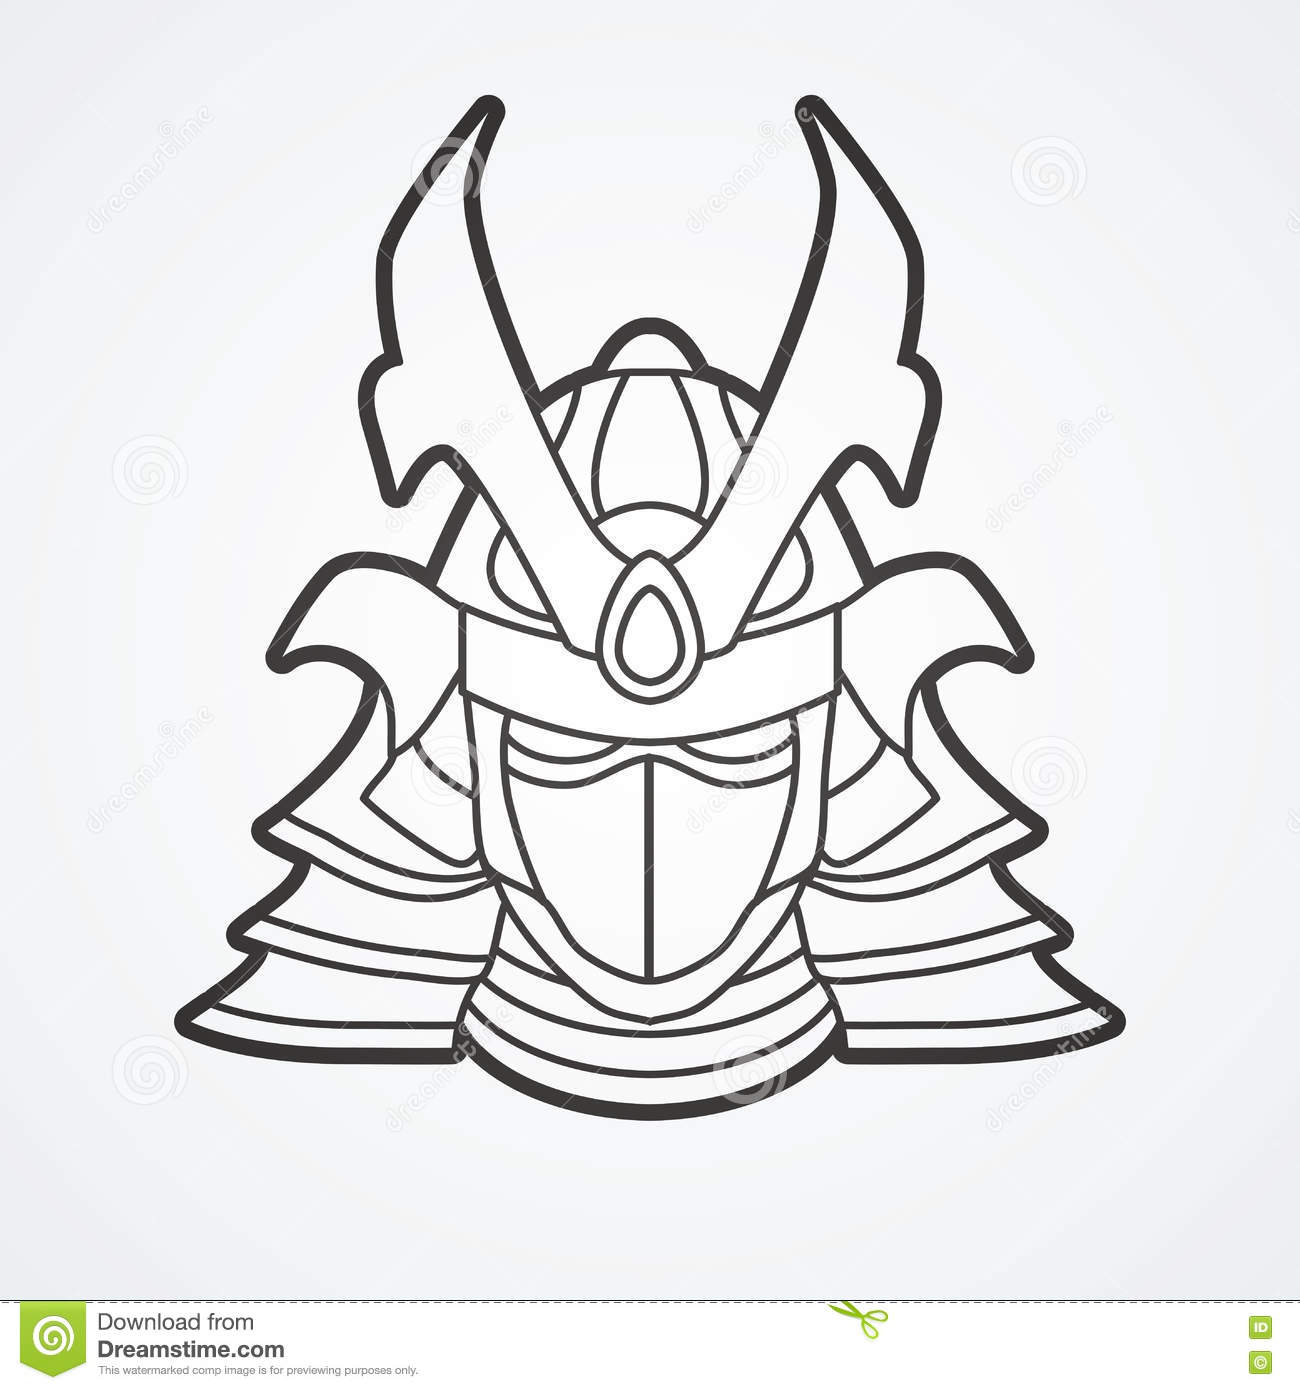 Samurai warrior mask stock vector. Image of military ...